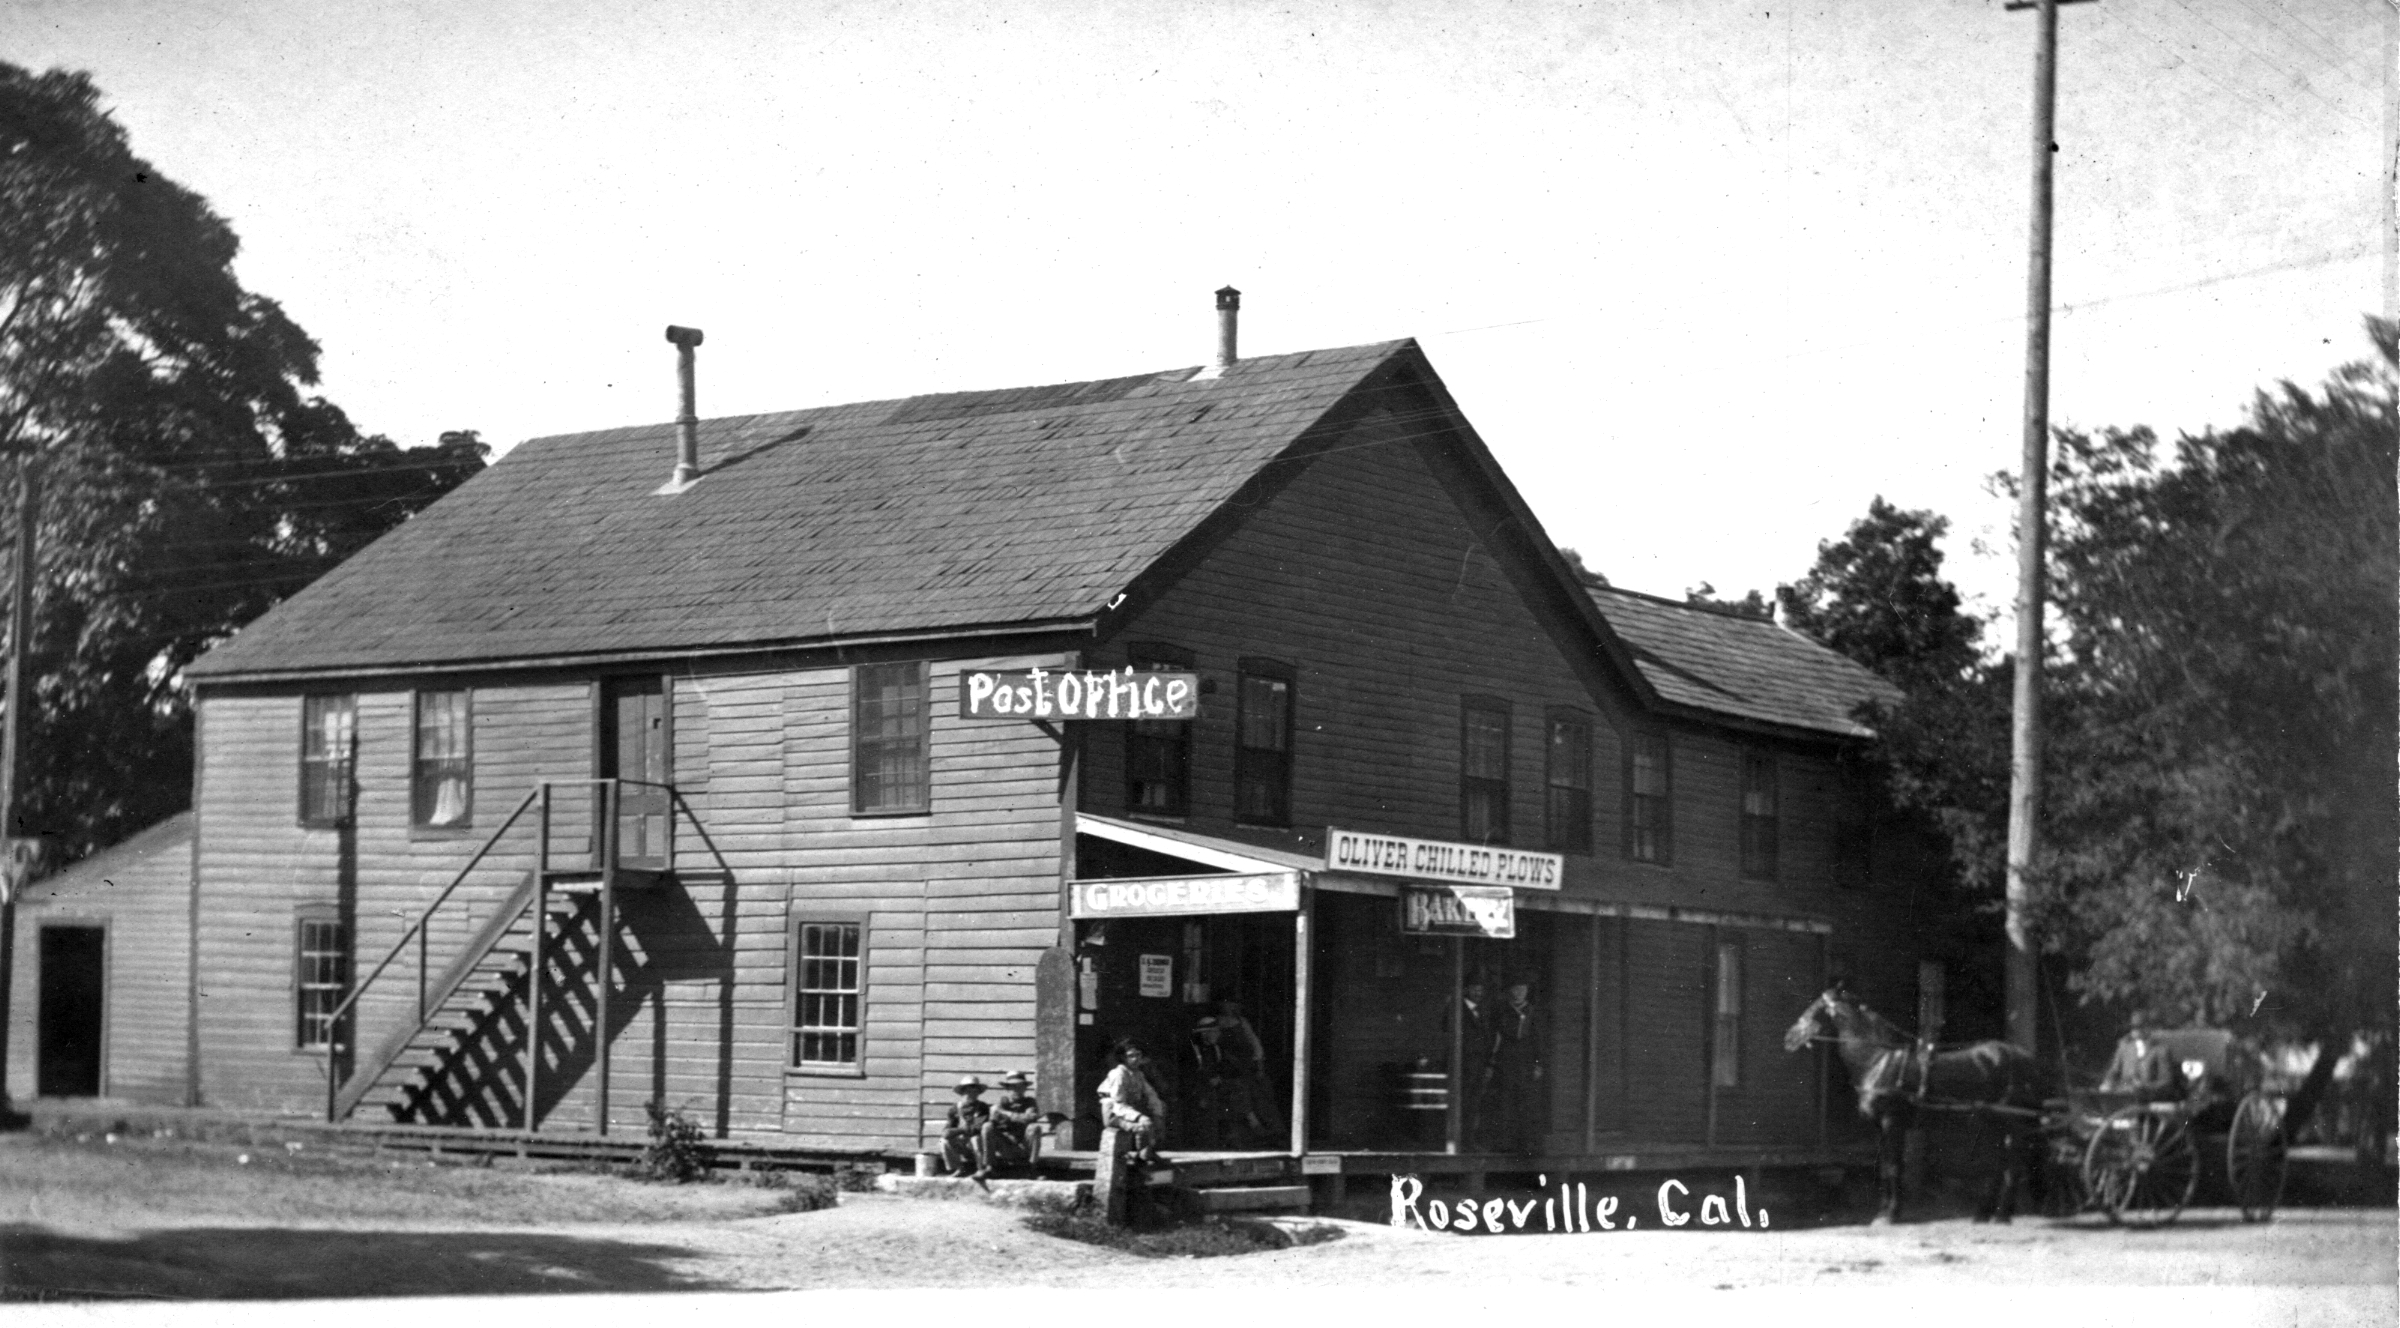 Lee Thomas mercantile store was Roseville's first store and this is where Lottie served as postmistress.